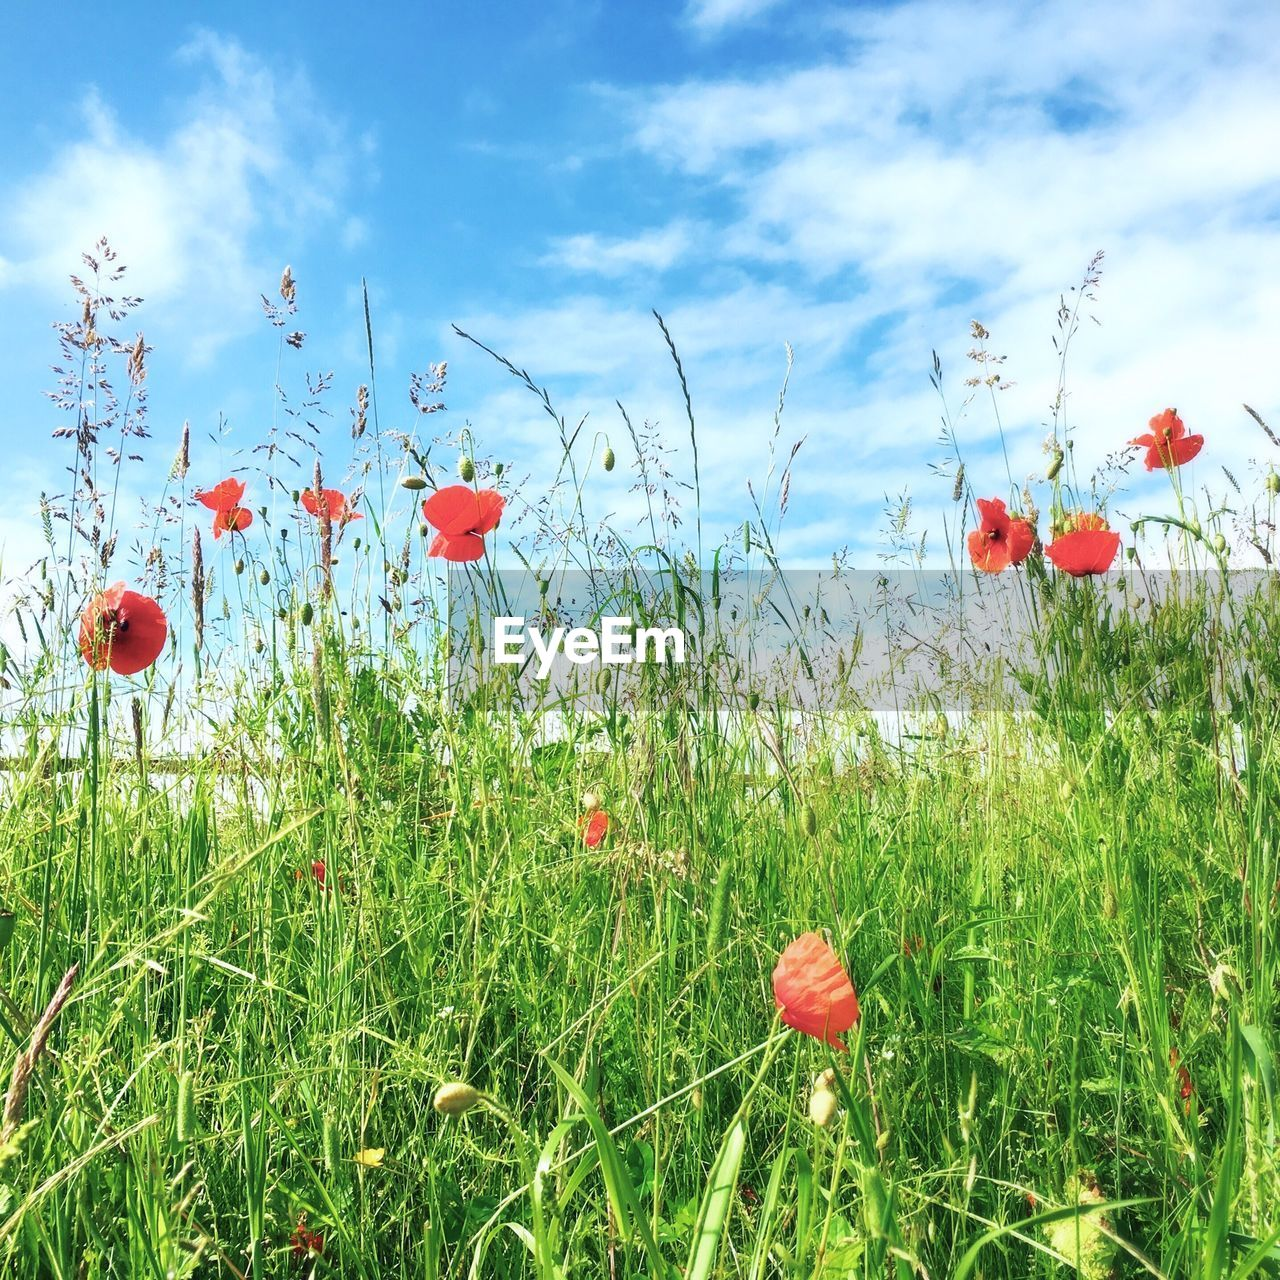 Poppies growing on field against cloudy sky